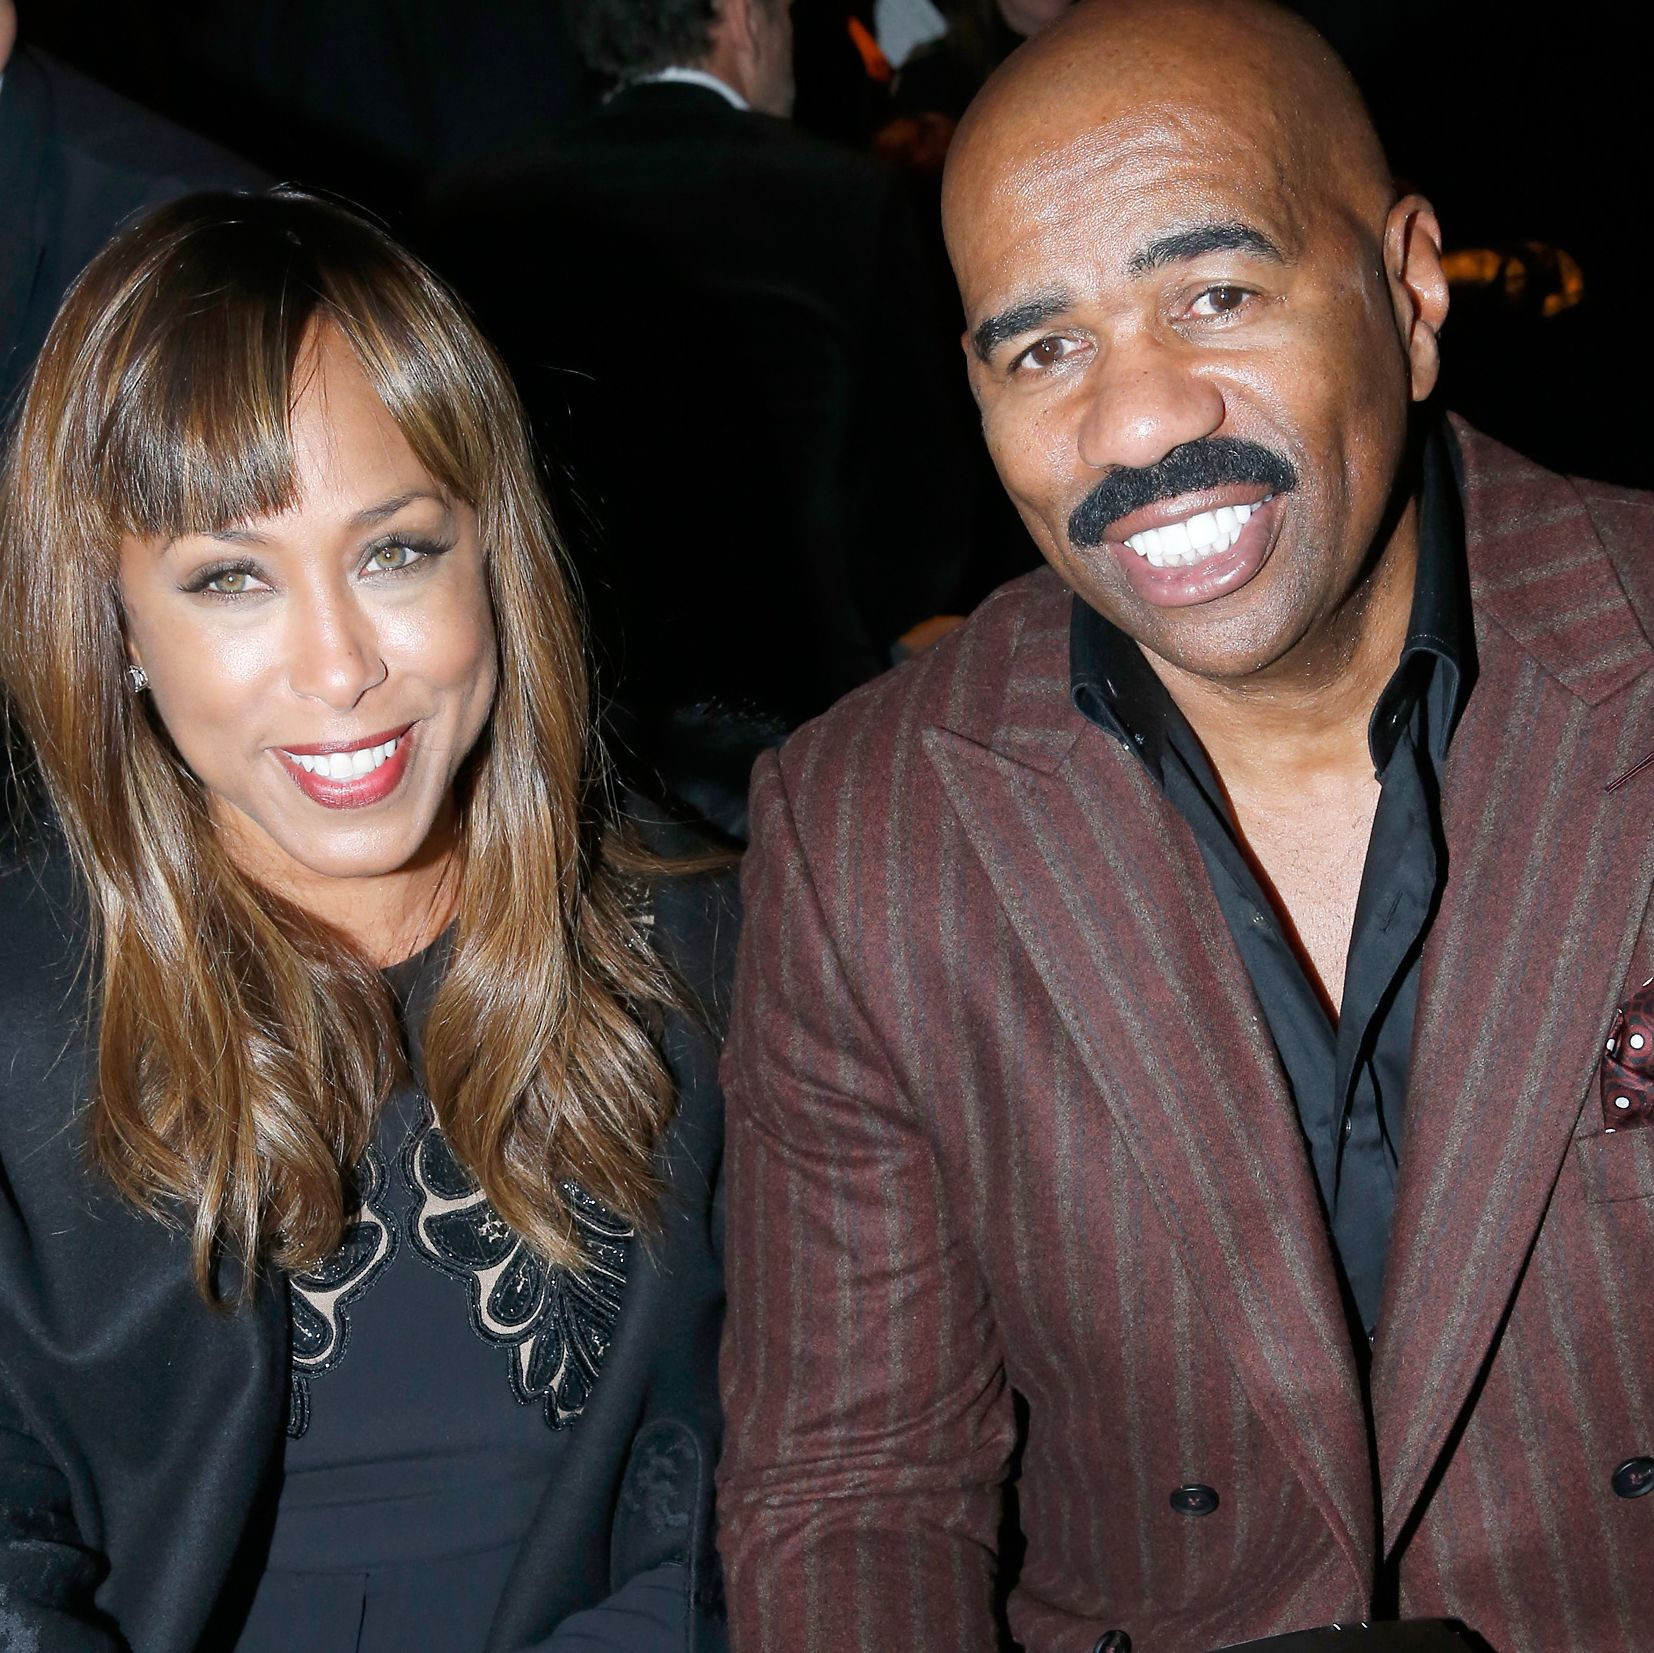 Steve Harvey's Wife Marjorie Speaks the Truth About What's Going on in Their Marriage